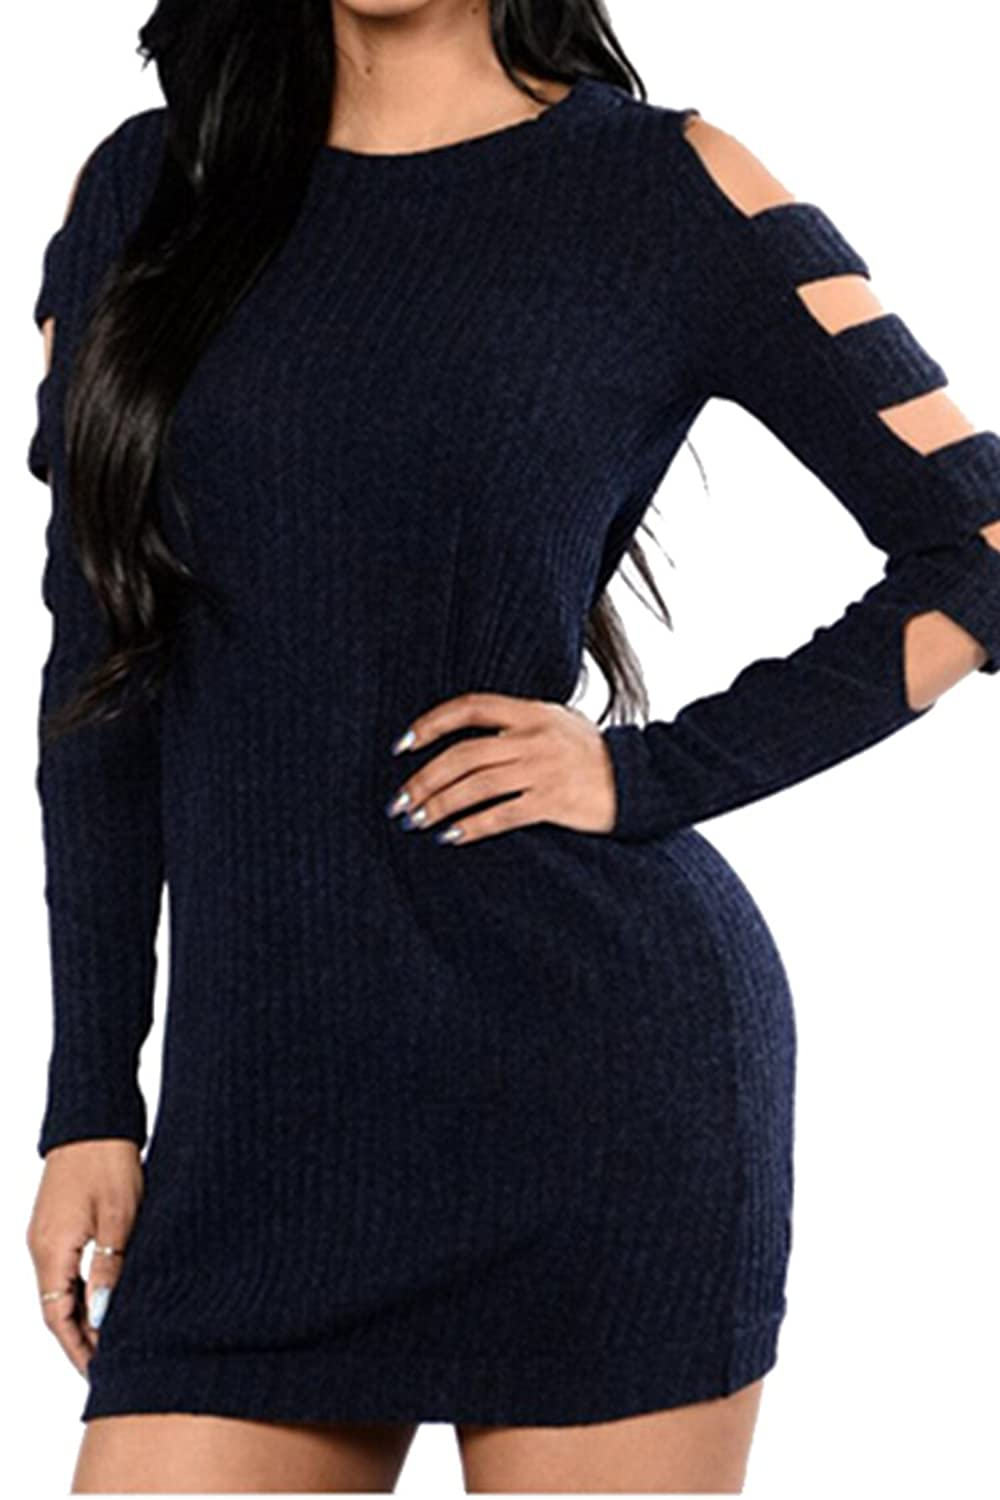 Meenew Women's Long Sleeve Hollow Out Bodycon Midi Cable Knit Sweater Dress